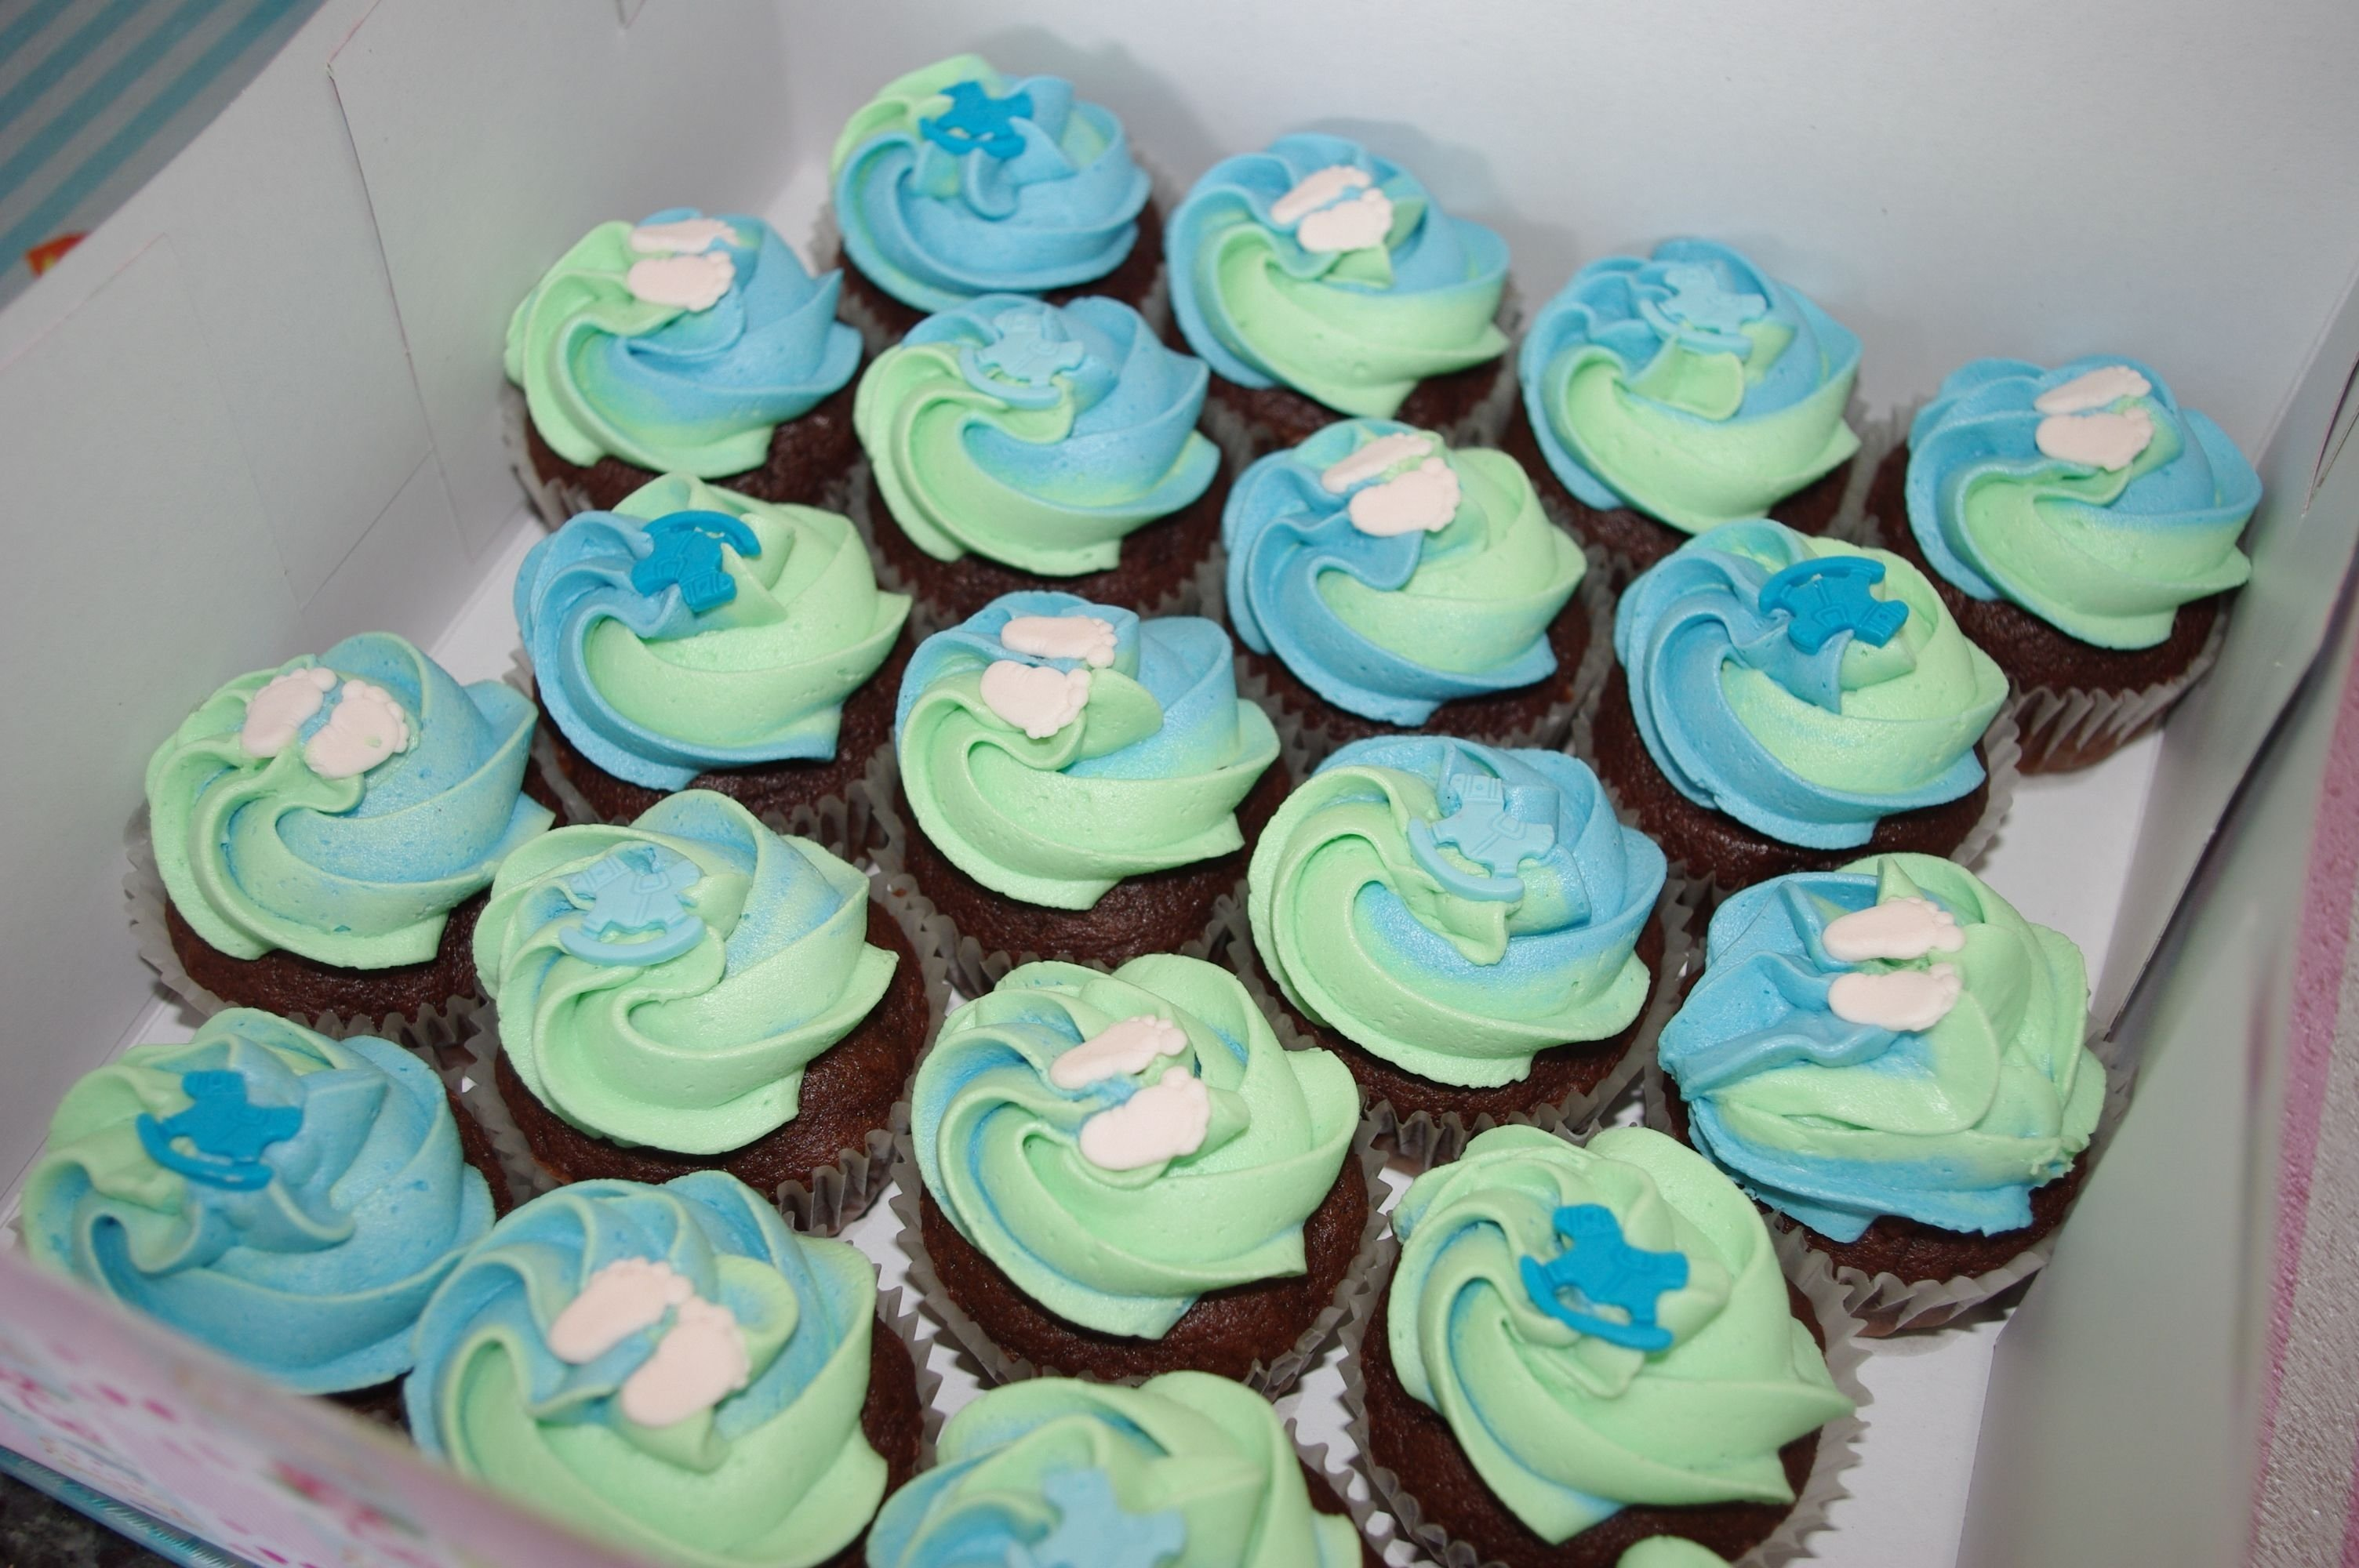 10 Trendy Baby Shower Cupcake Ideas For A Boy baby shower cupcakes ideas easy submited images pic fly fantastic